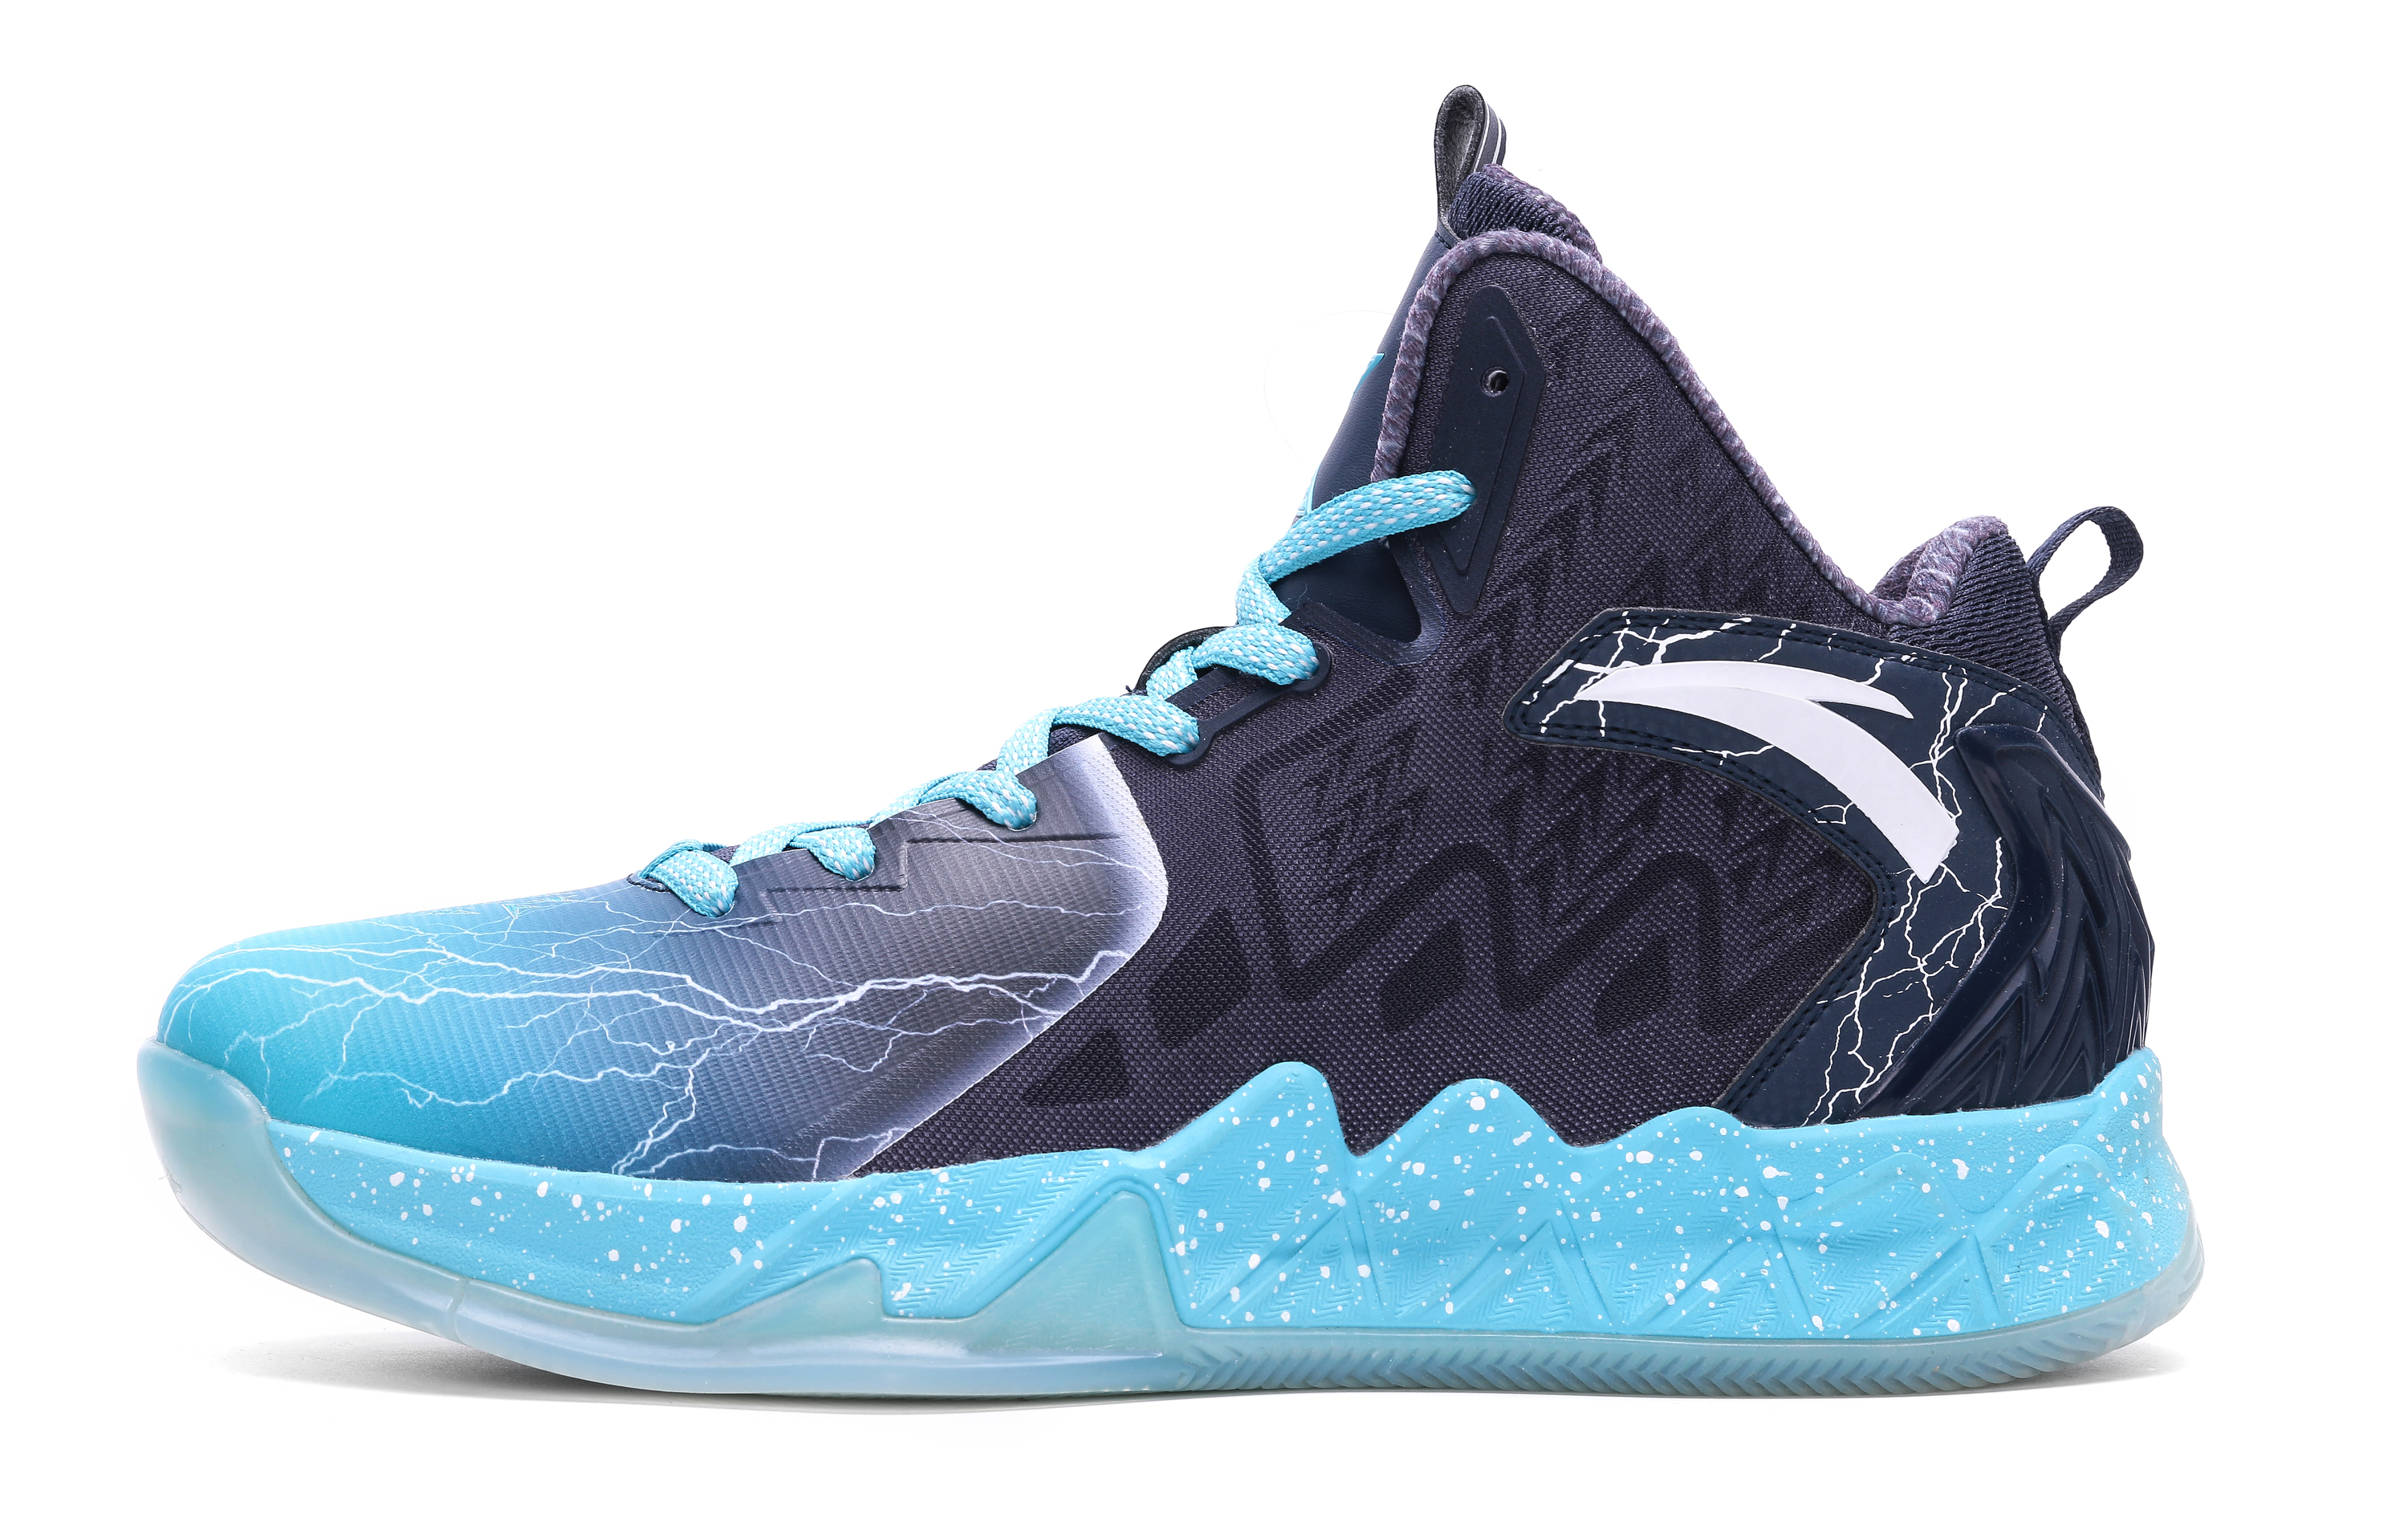 Klay Thompson New Shoes